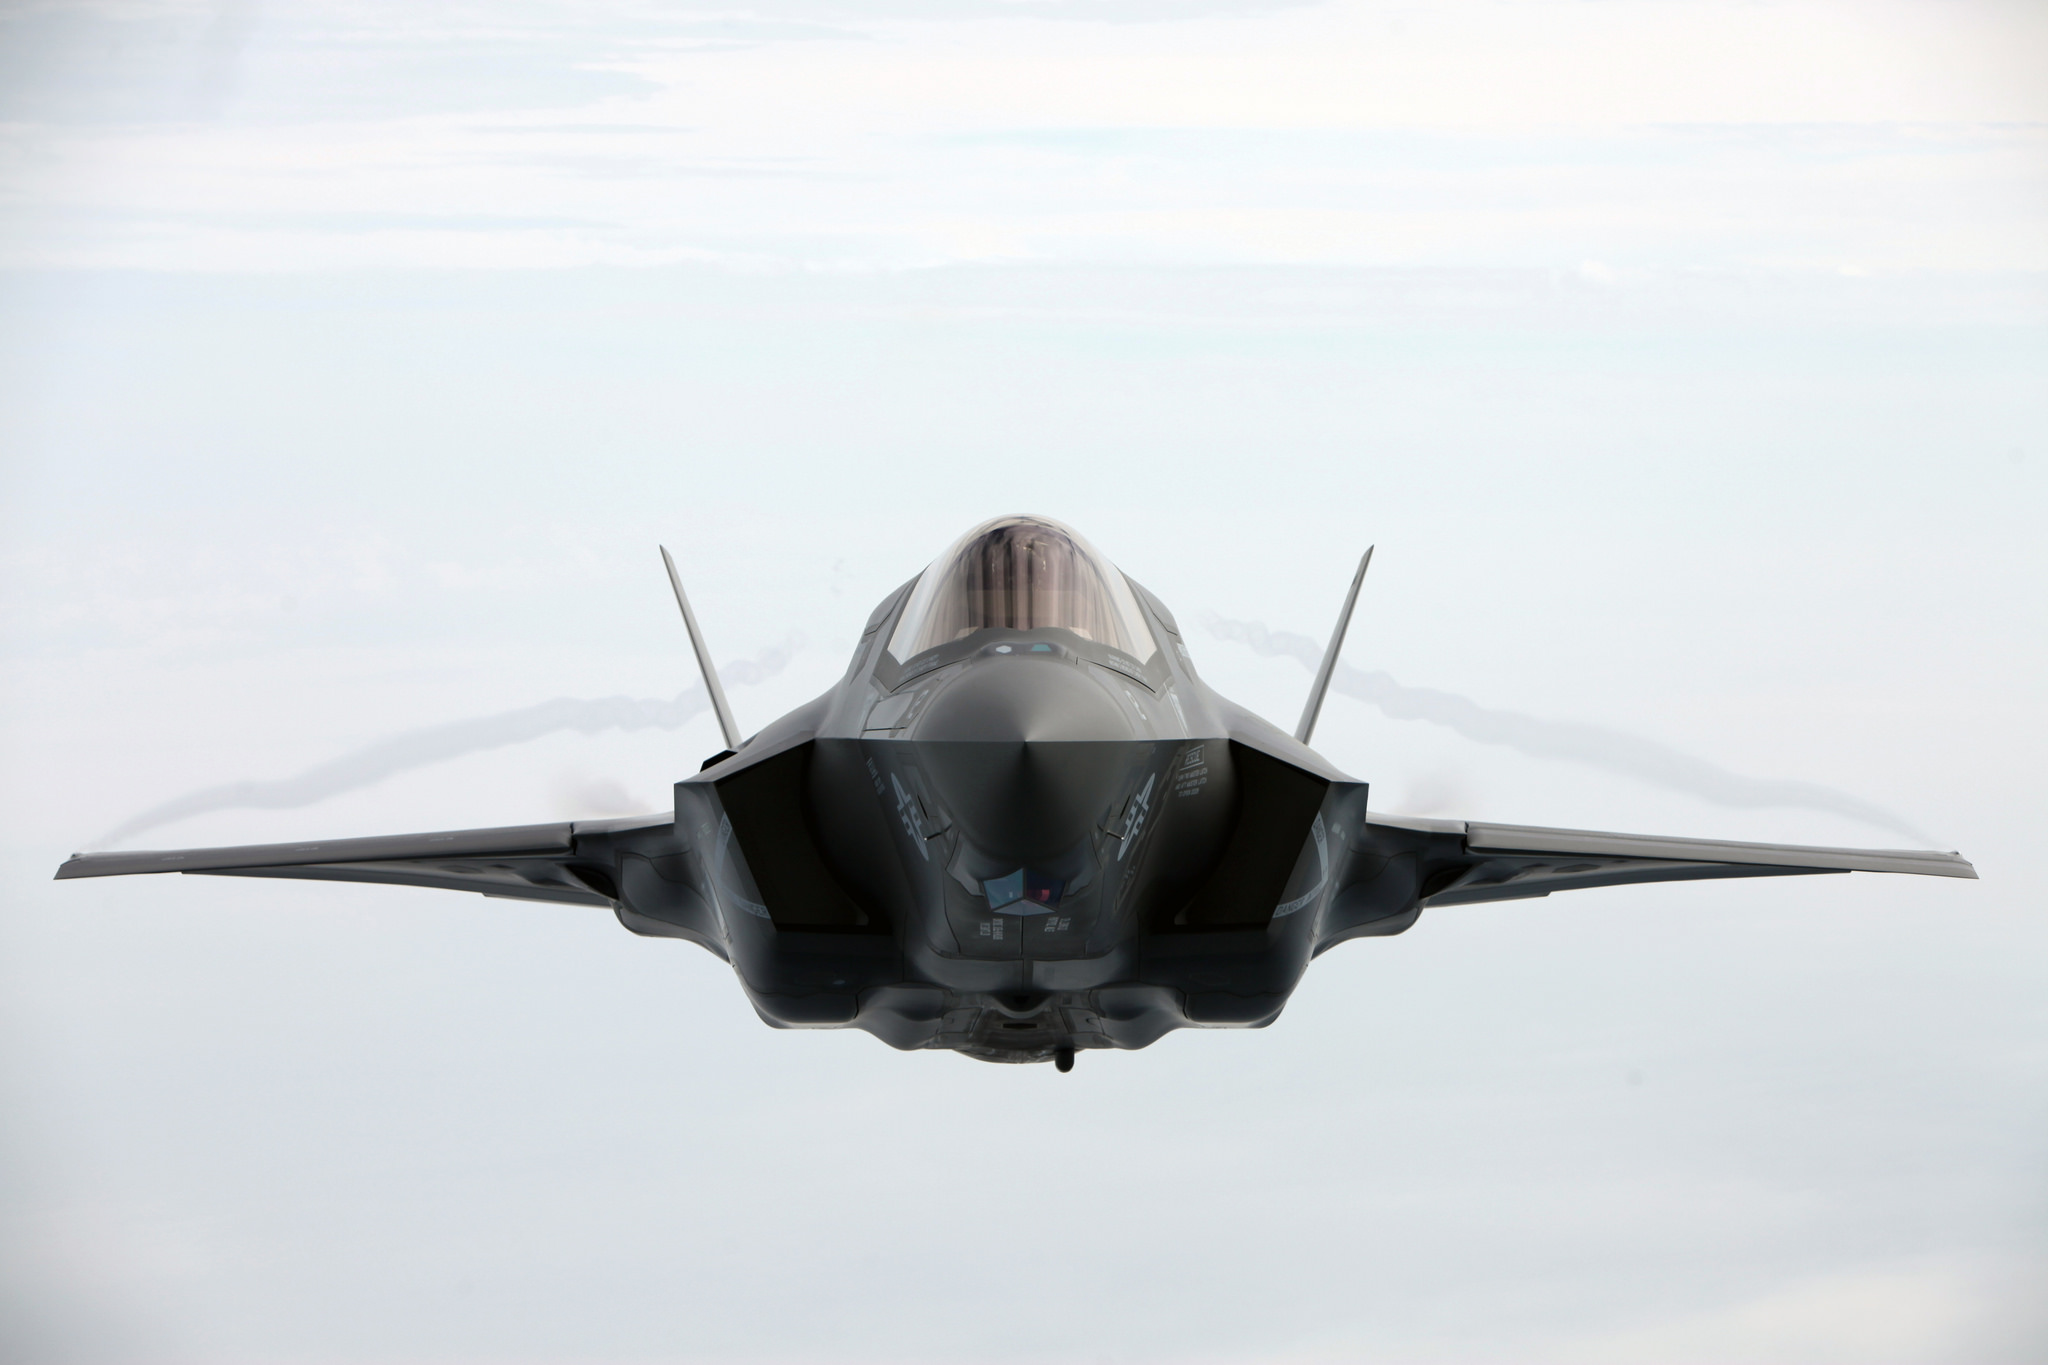 f 35 fighter wallpaper - photo #31